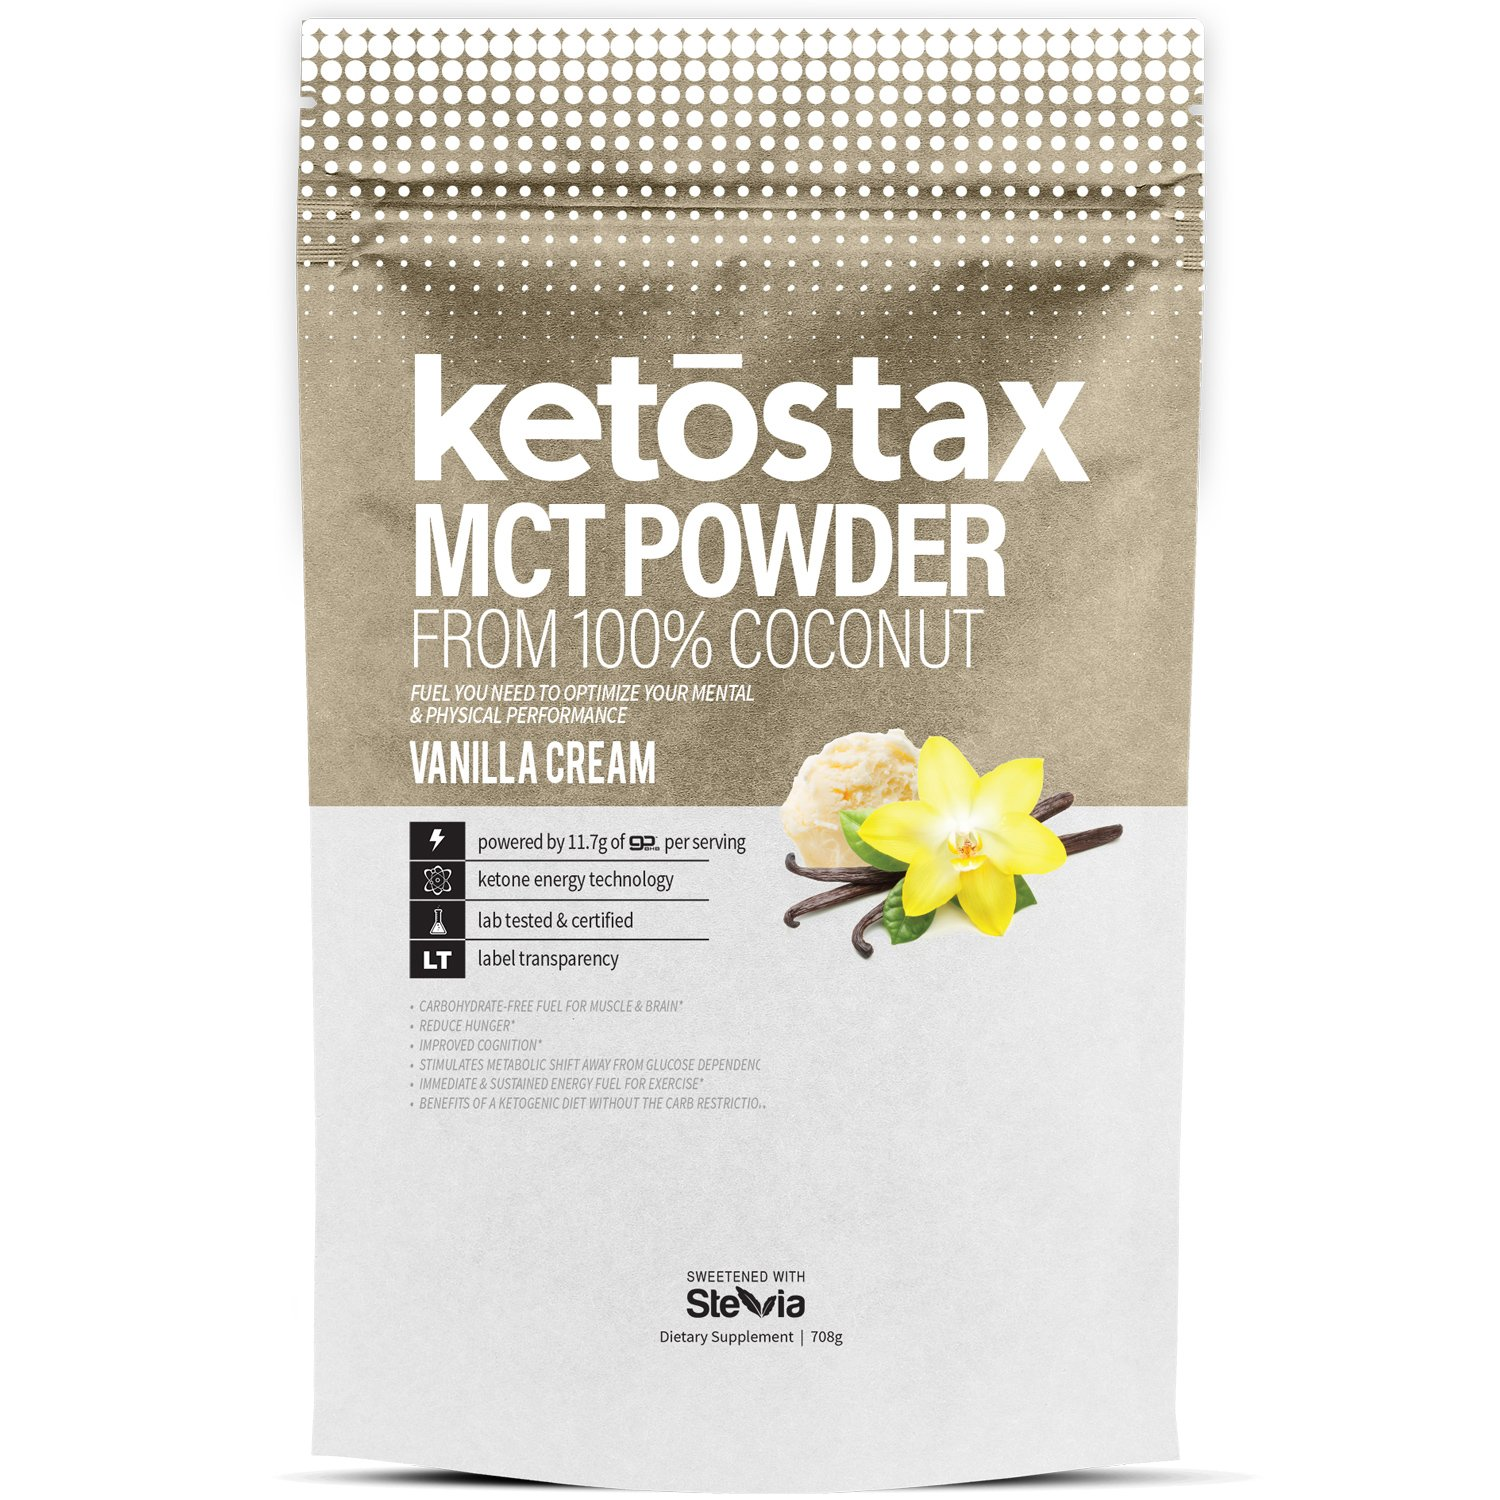 Ketostax MCT Oil Powder - 20 servings of Vanilla Cream Flavored Supercharged MCT Oil Powder with Acacia Fiber